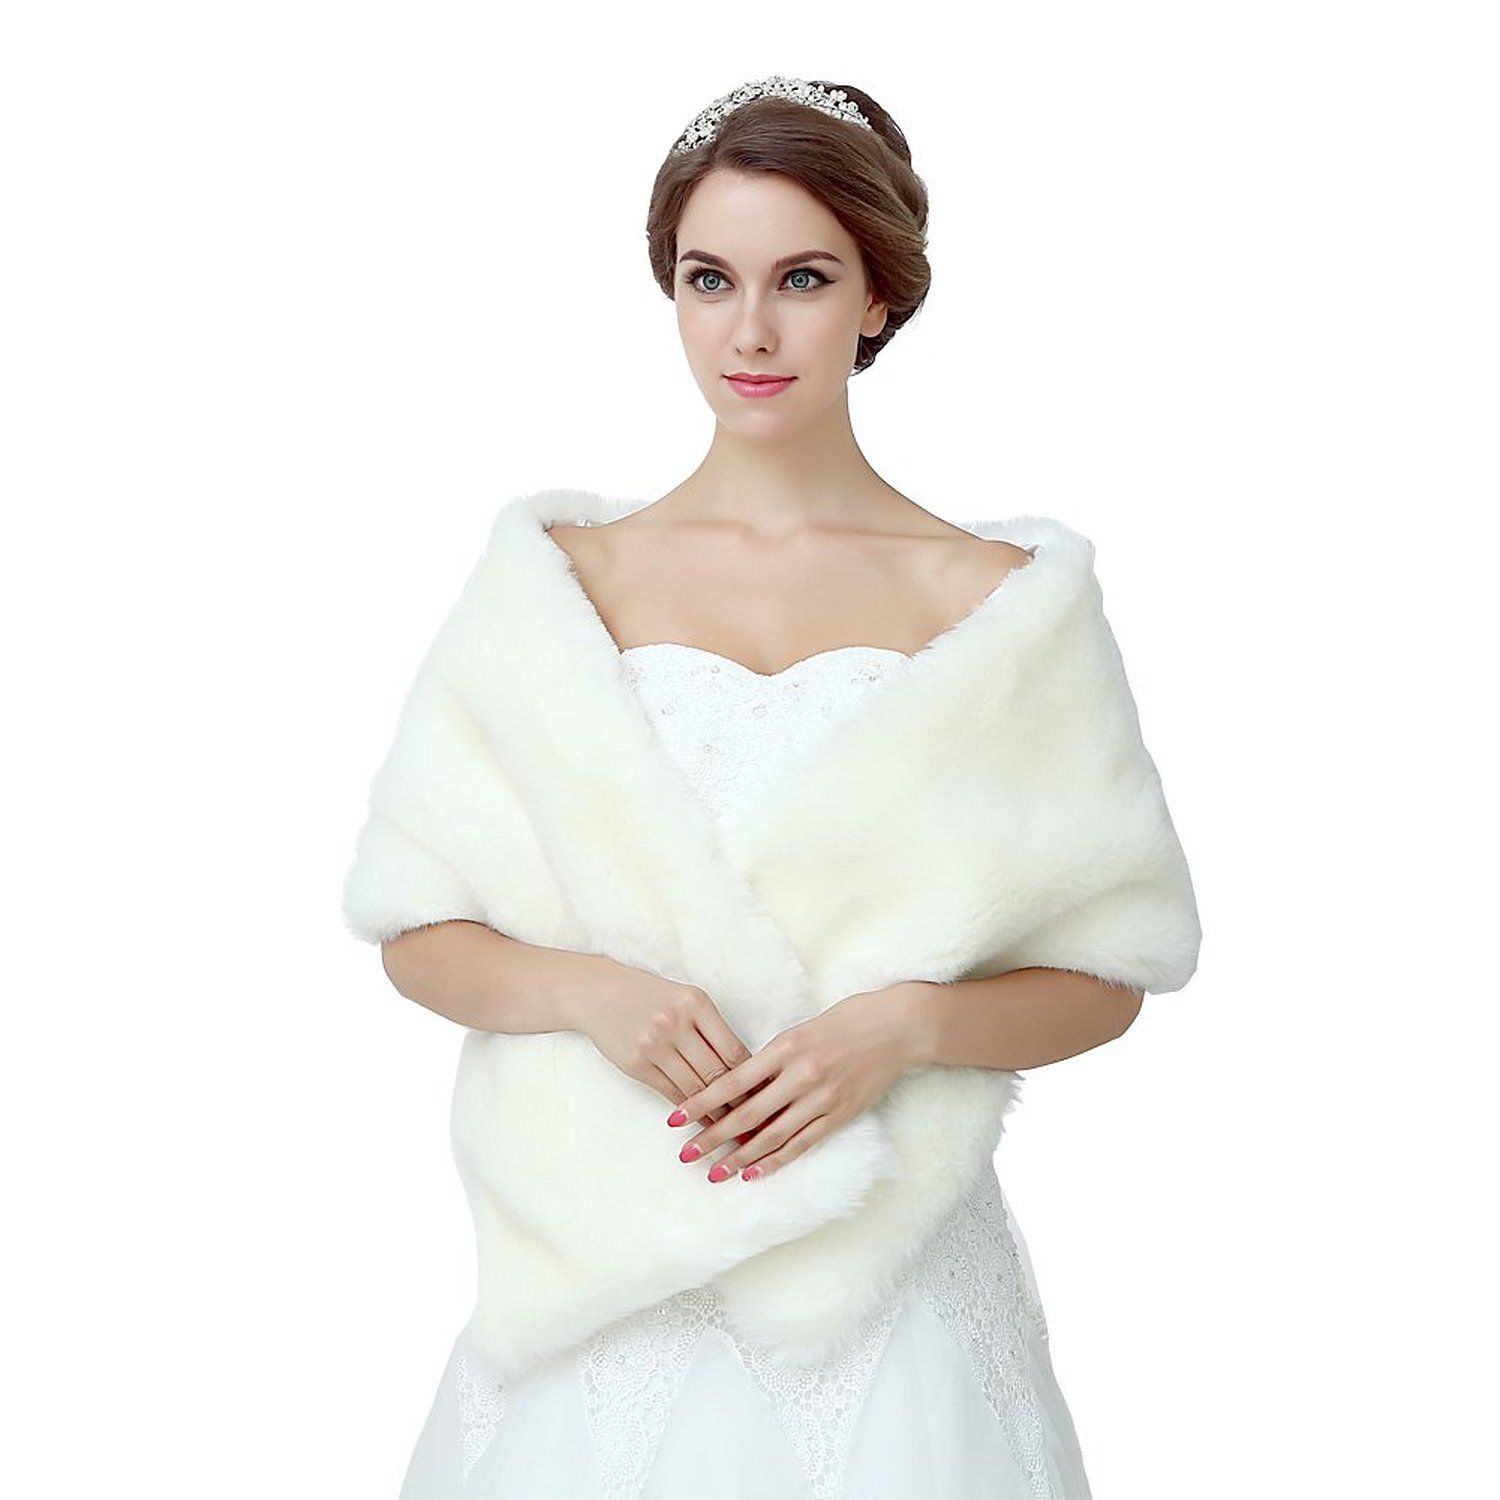 1940s Style Wedding Dresses and Accessories Diyouth Ivory Shawl Wrap Faux Fur Scarf Stoles for Wedding Dresses $17.99 AT vintagedancer.com